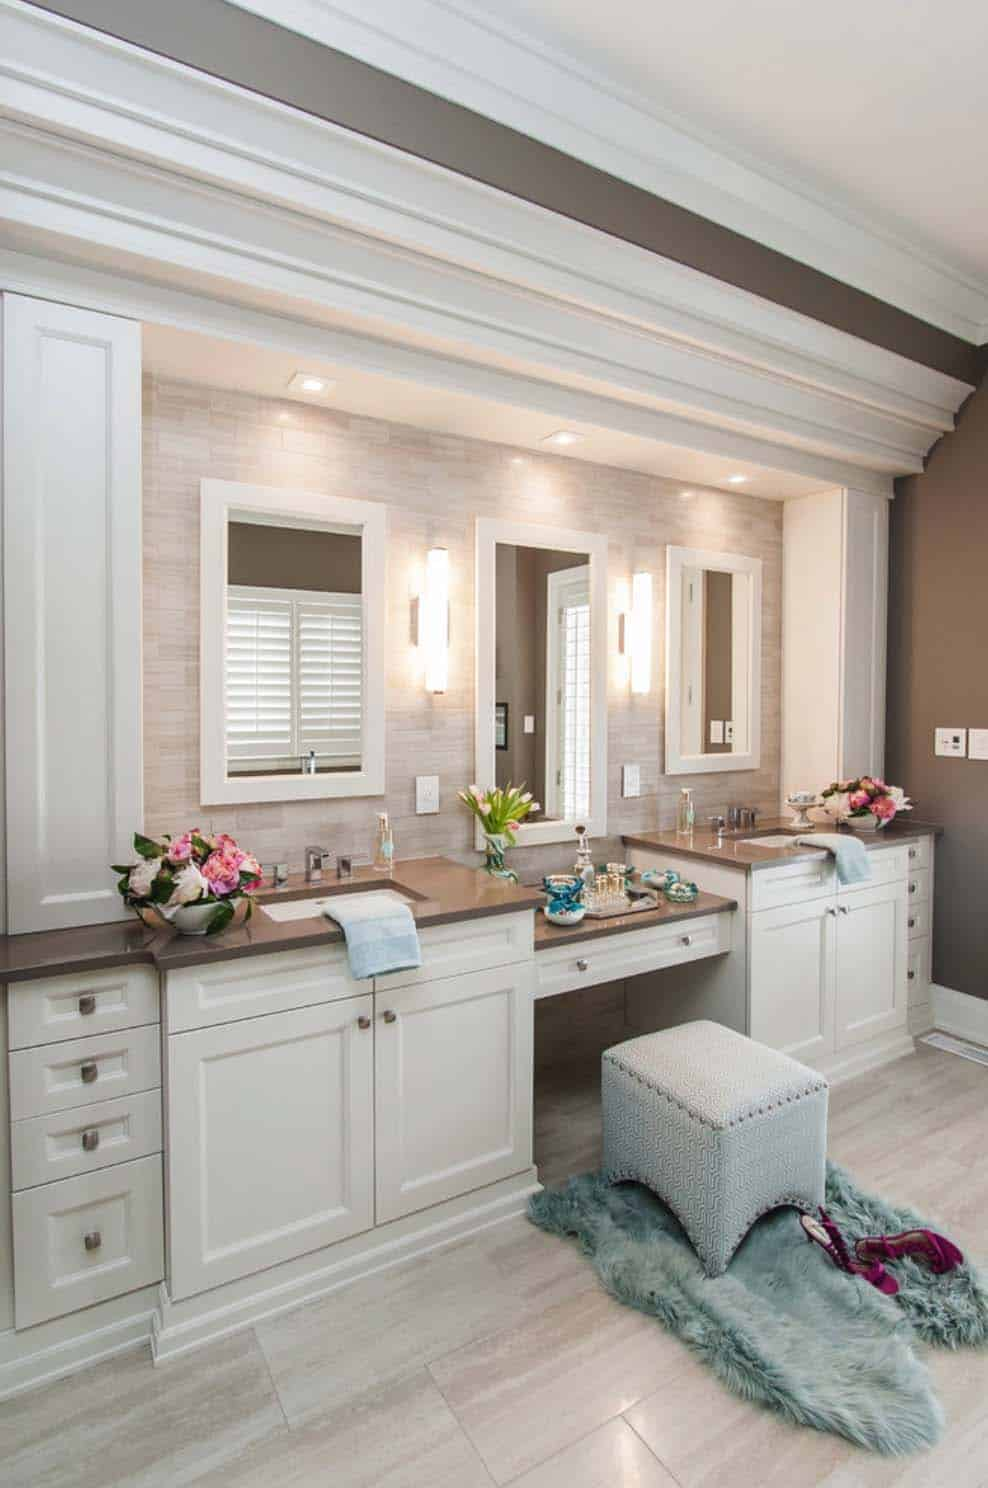 Traditional Bathroom Design Ideas-02-1 Kindesign